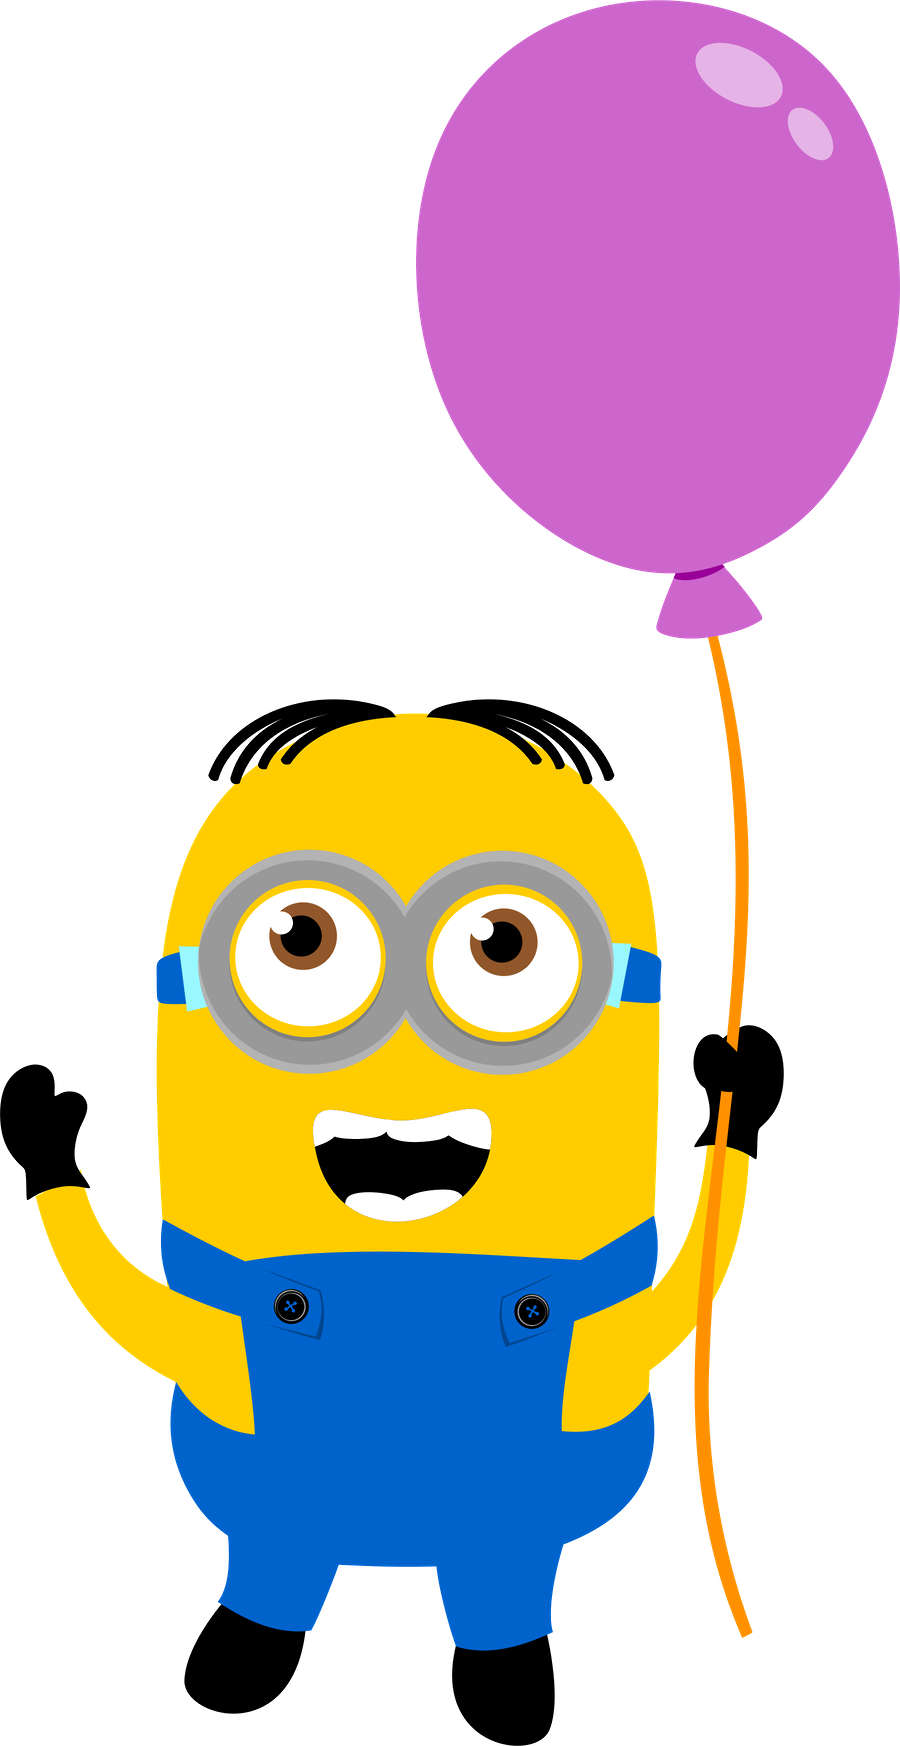 Happy thanksgiving minion clipart jpg transparent library Minions - Minus | Minion characters | Pinterest | Minion characters ... jpg transparent library